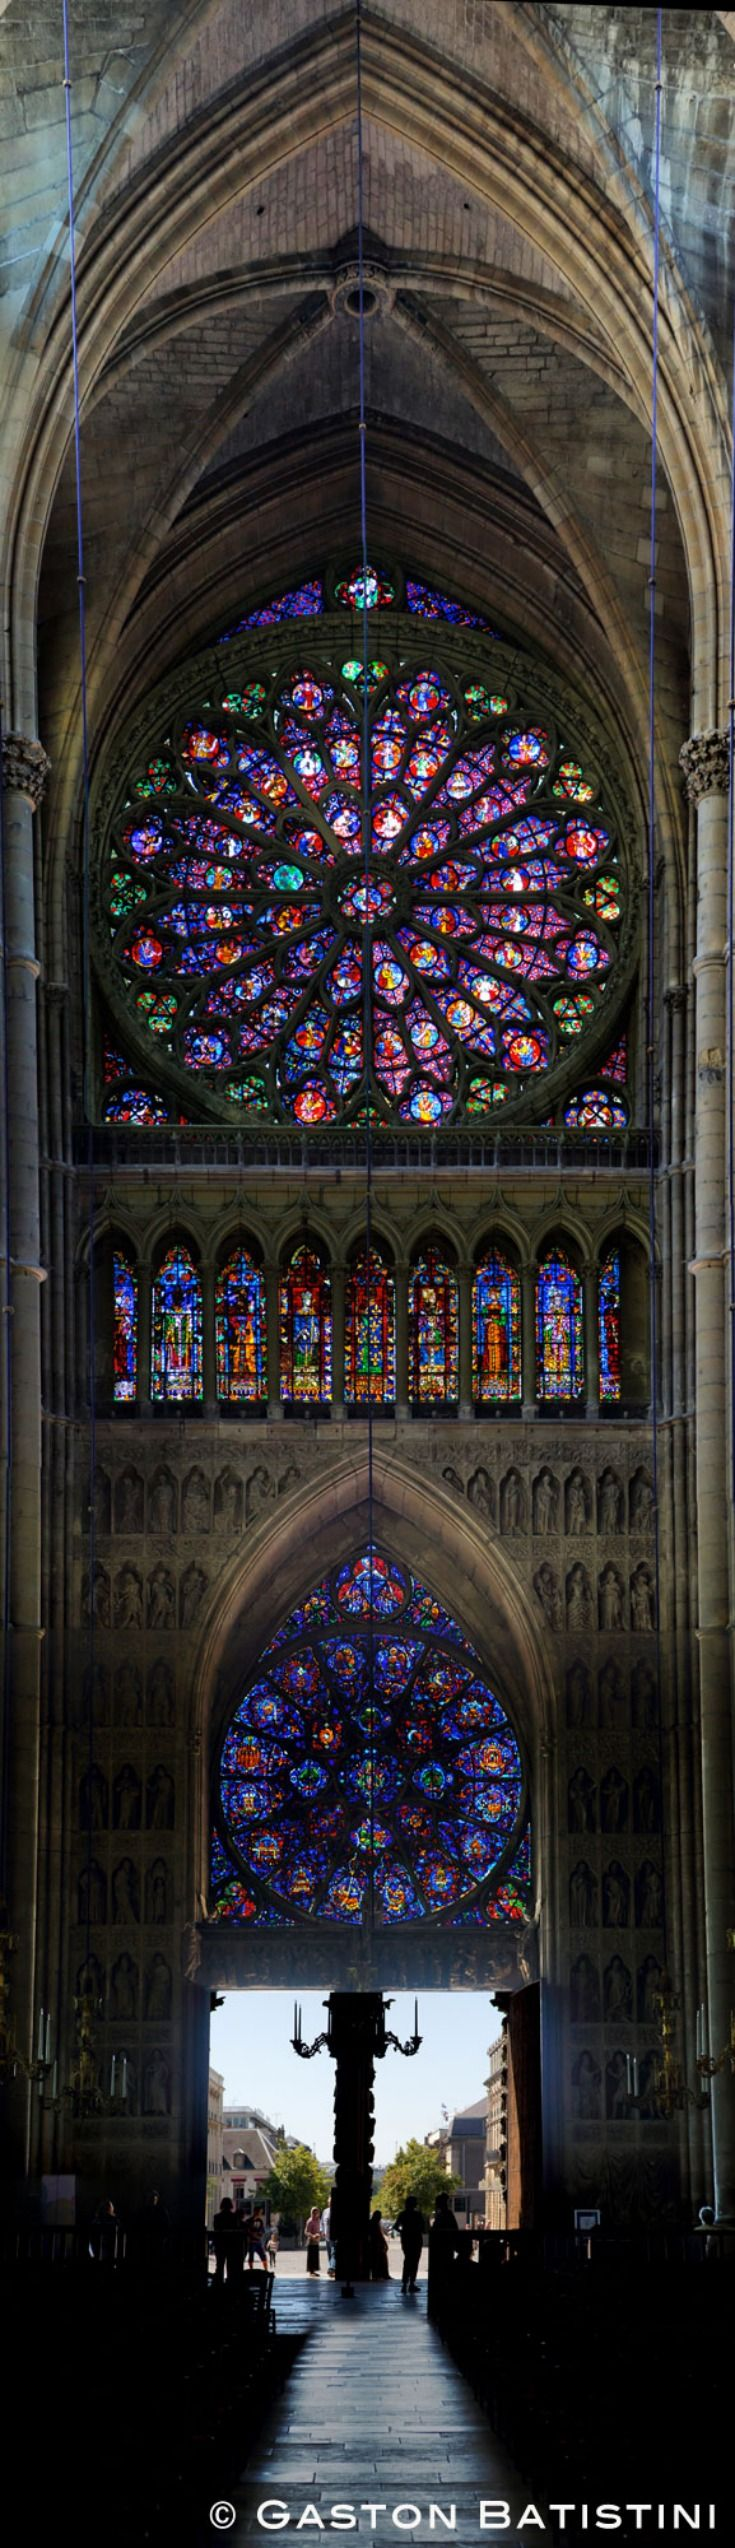 Cathédrale Notre-Dame de Reims, Champagne Ardenne, France....it is very beautiful!